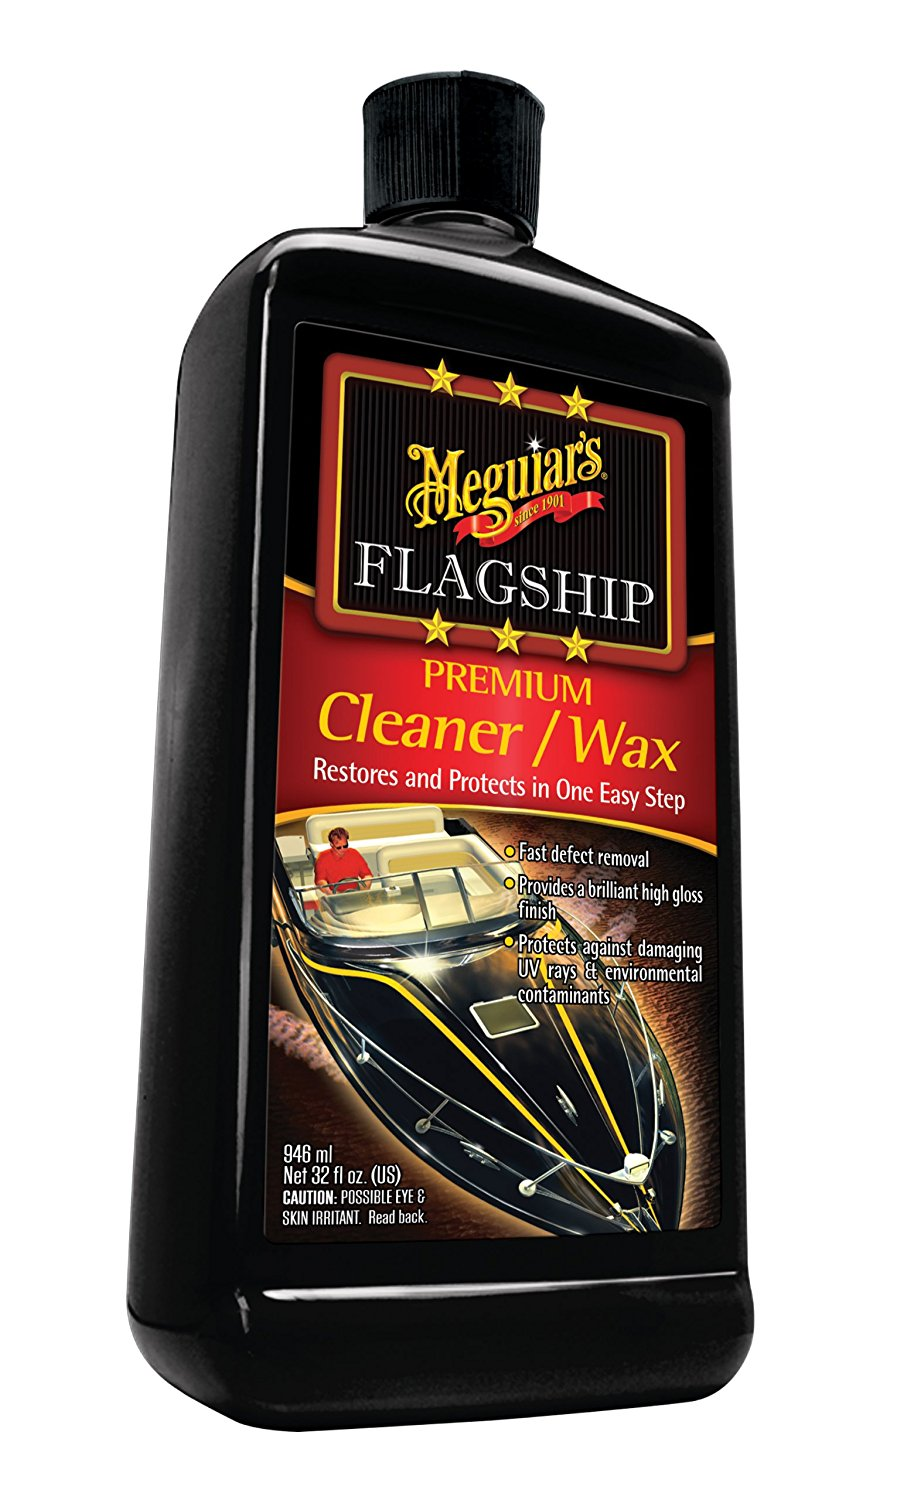 Image of Meguiars Flagship Premium Cleaner & Wax (32 oz)